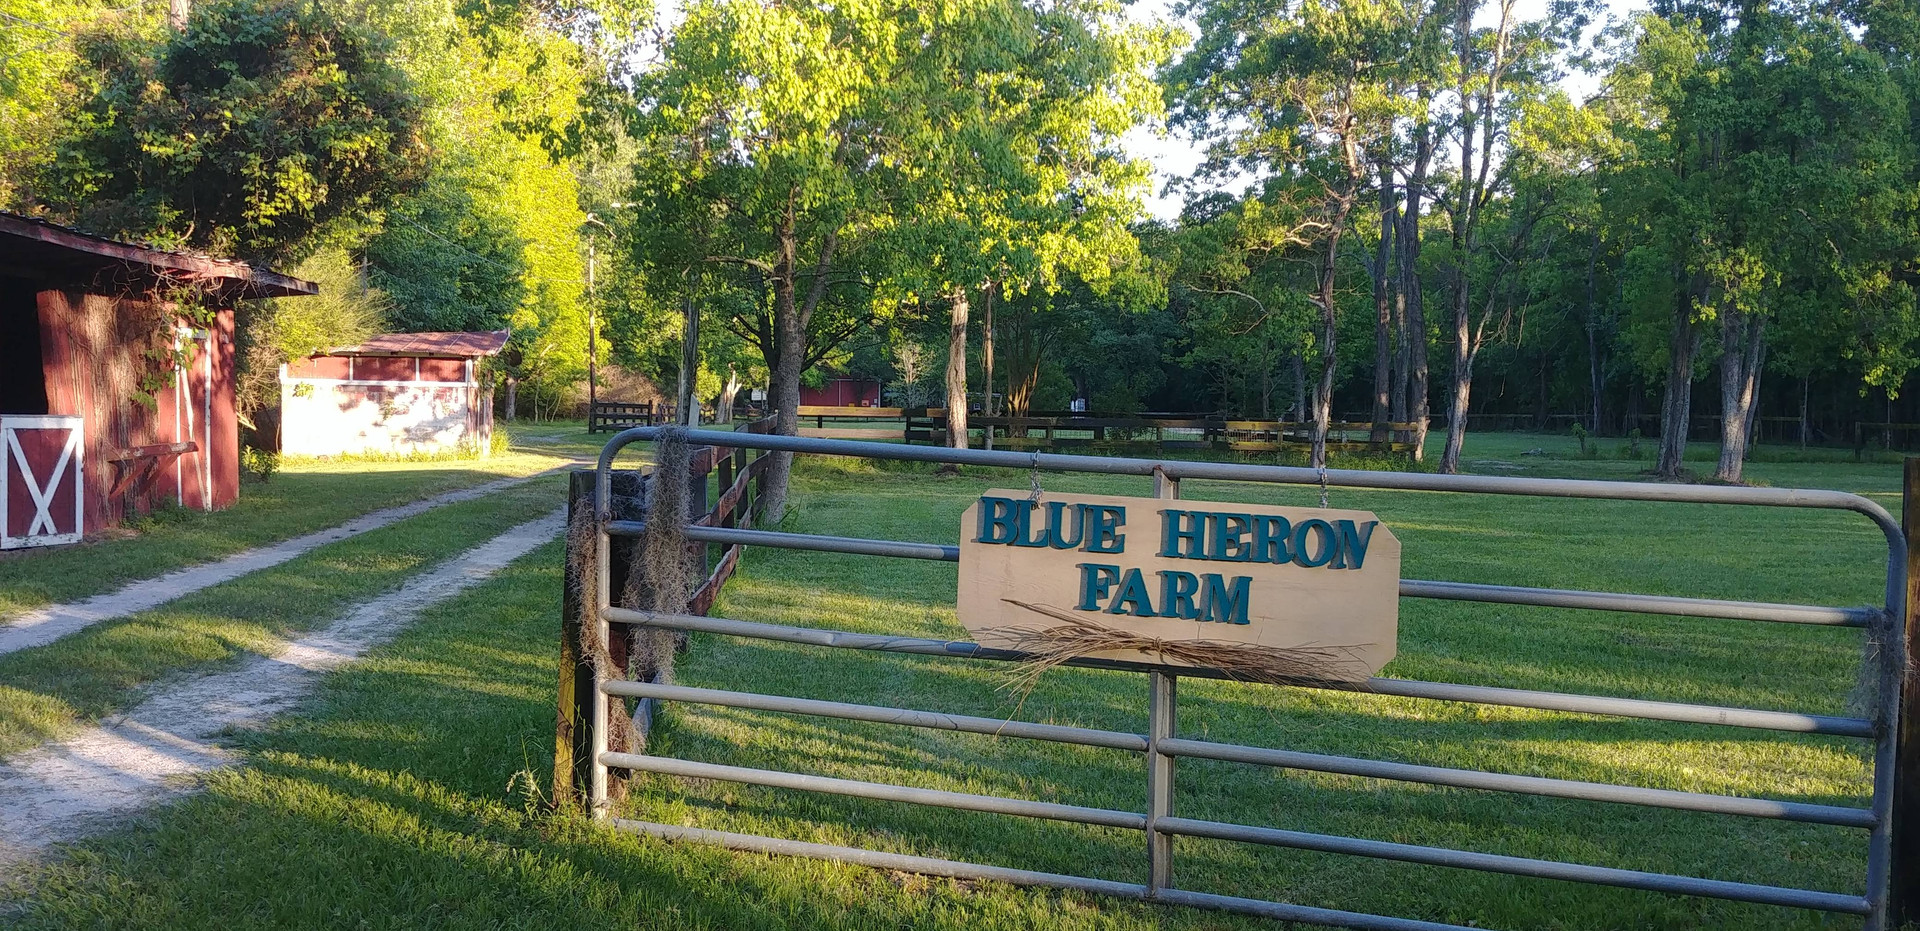 Our entry into the farm grounds